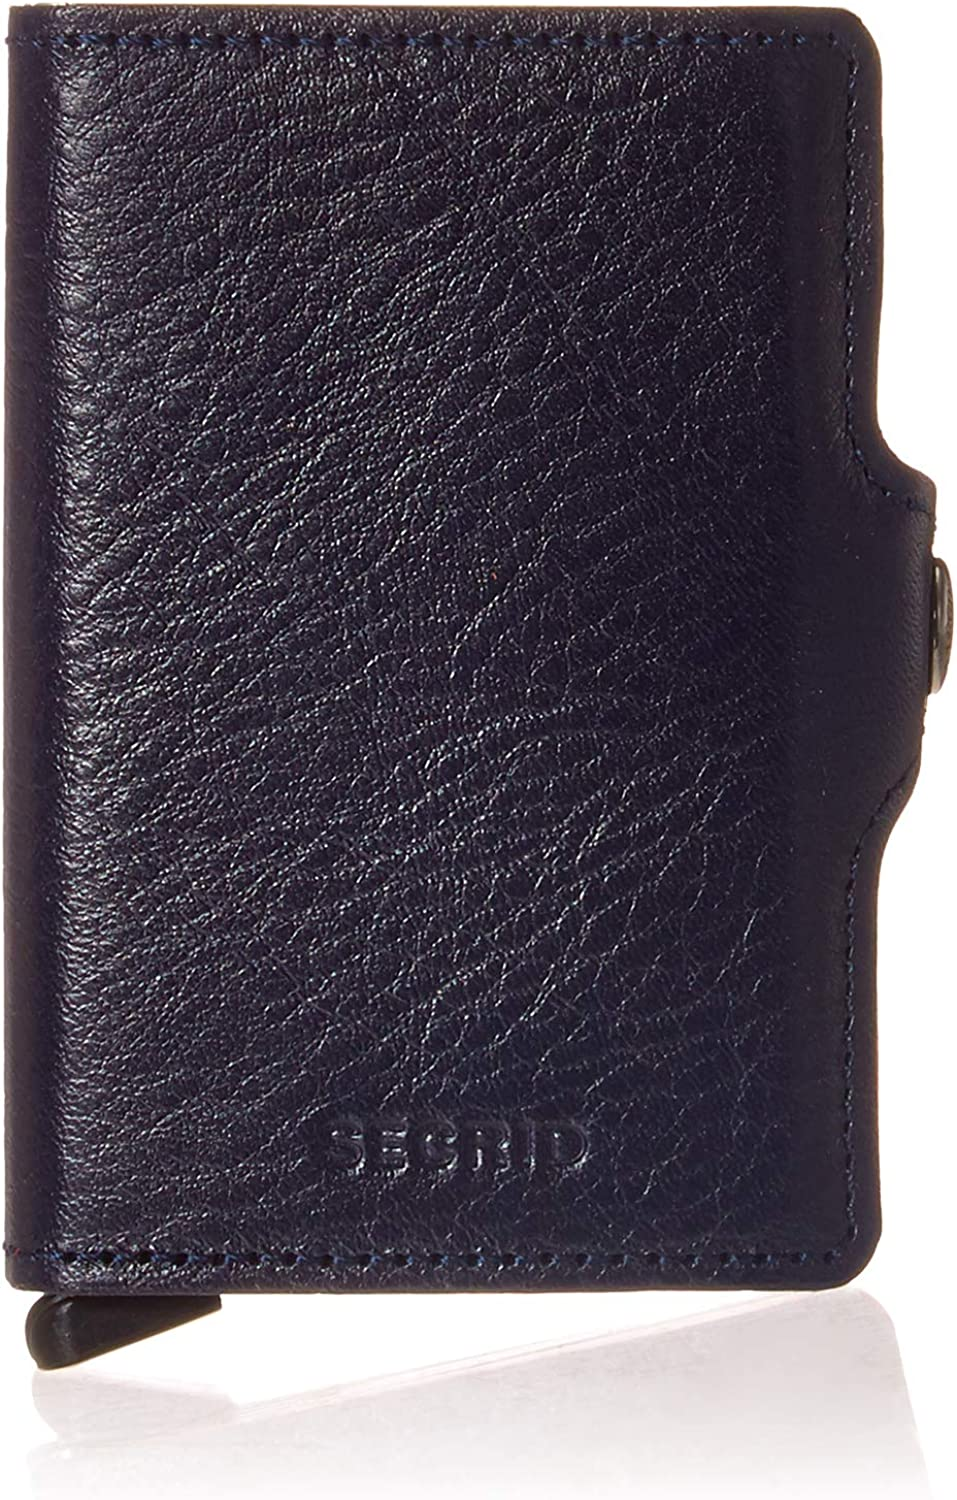 Secrid Twin Wallet Genuine Leather Veg Tanned Navy Safe Card Case max 18 cards